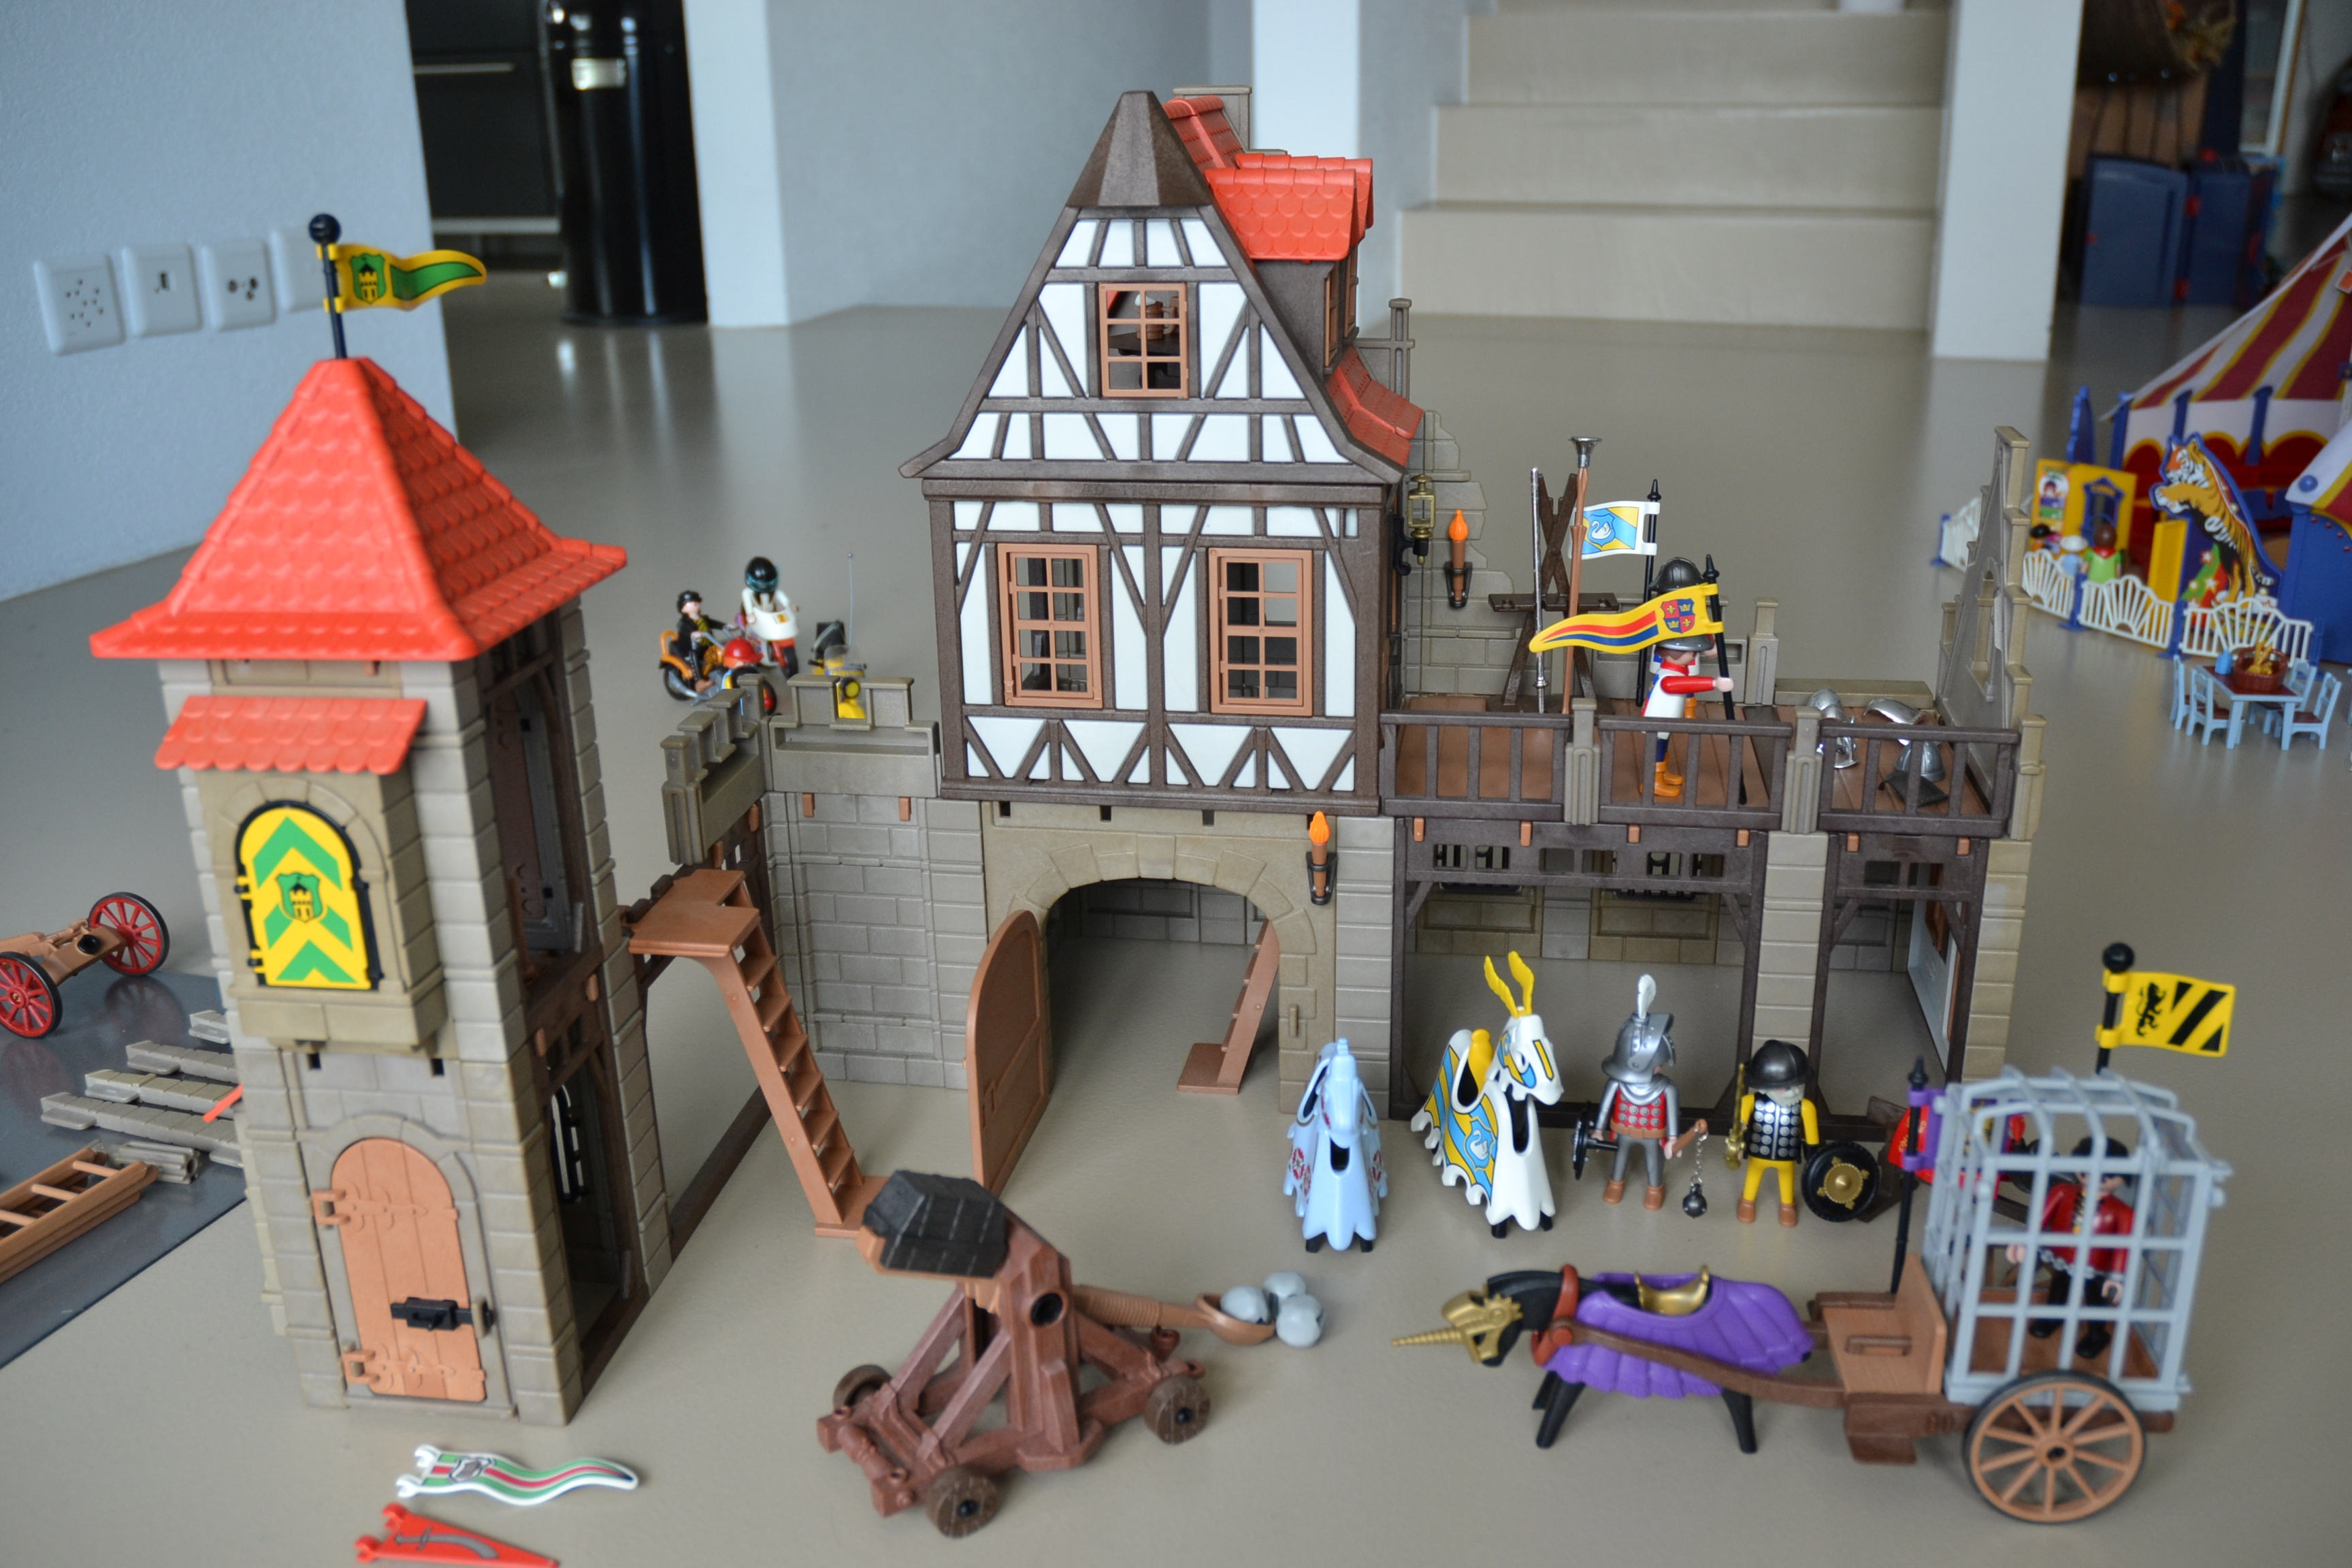 Katzenbaum Playmobil Index Of Marktplatz Images Playmobil